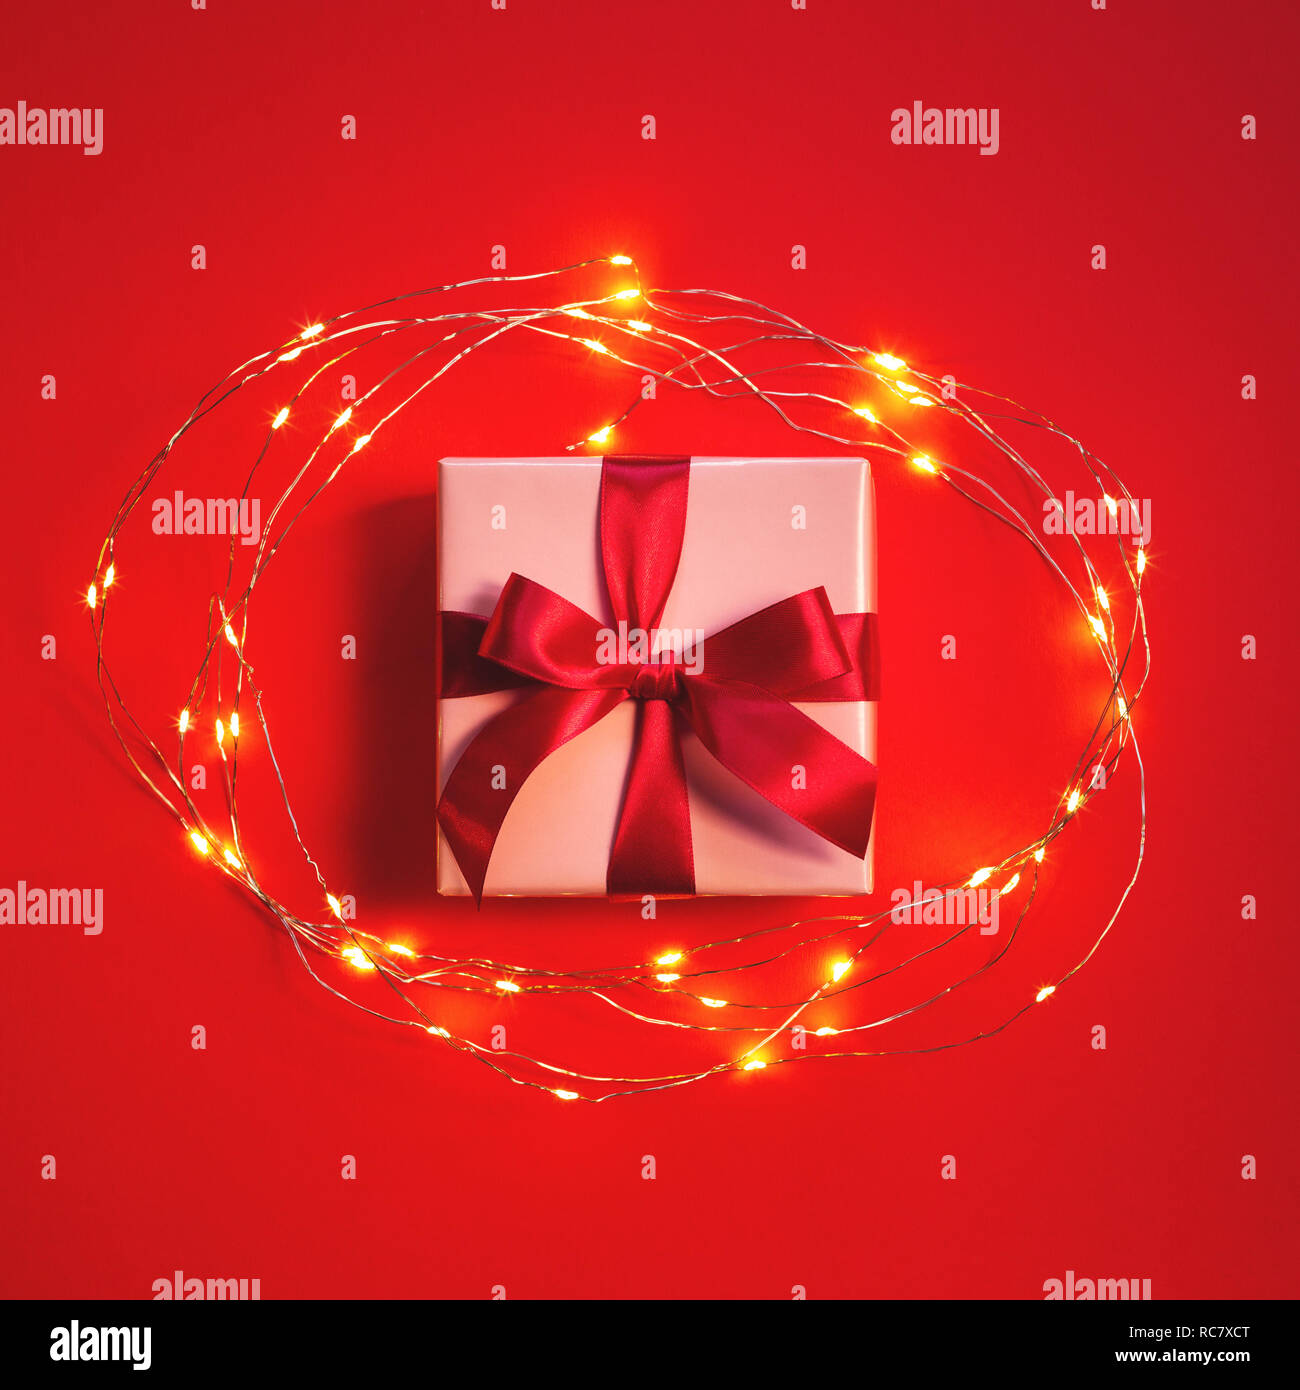 Gift box tied with red bow on red background with frame of garland lights. Top view. - Stock Image